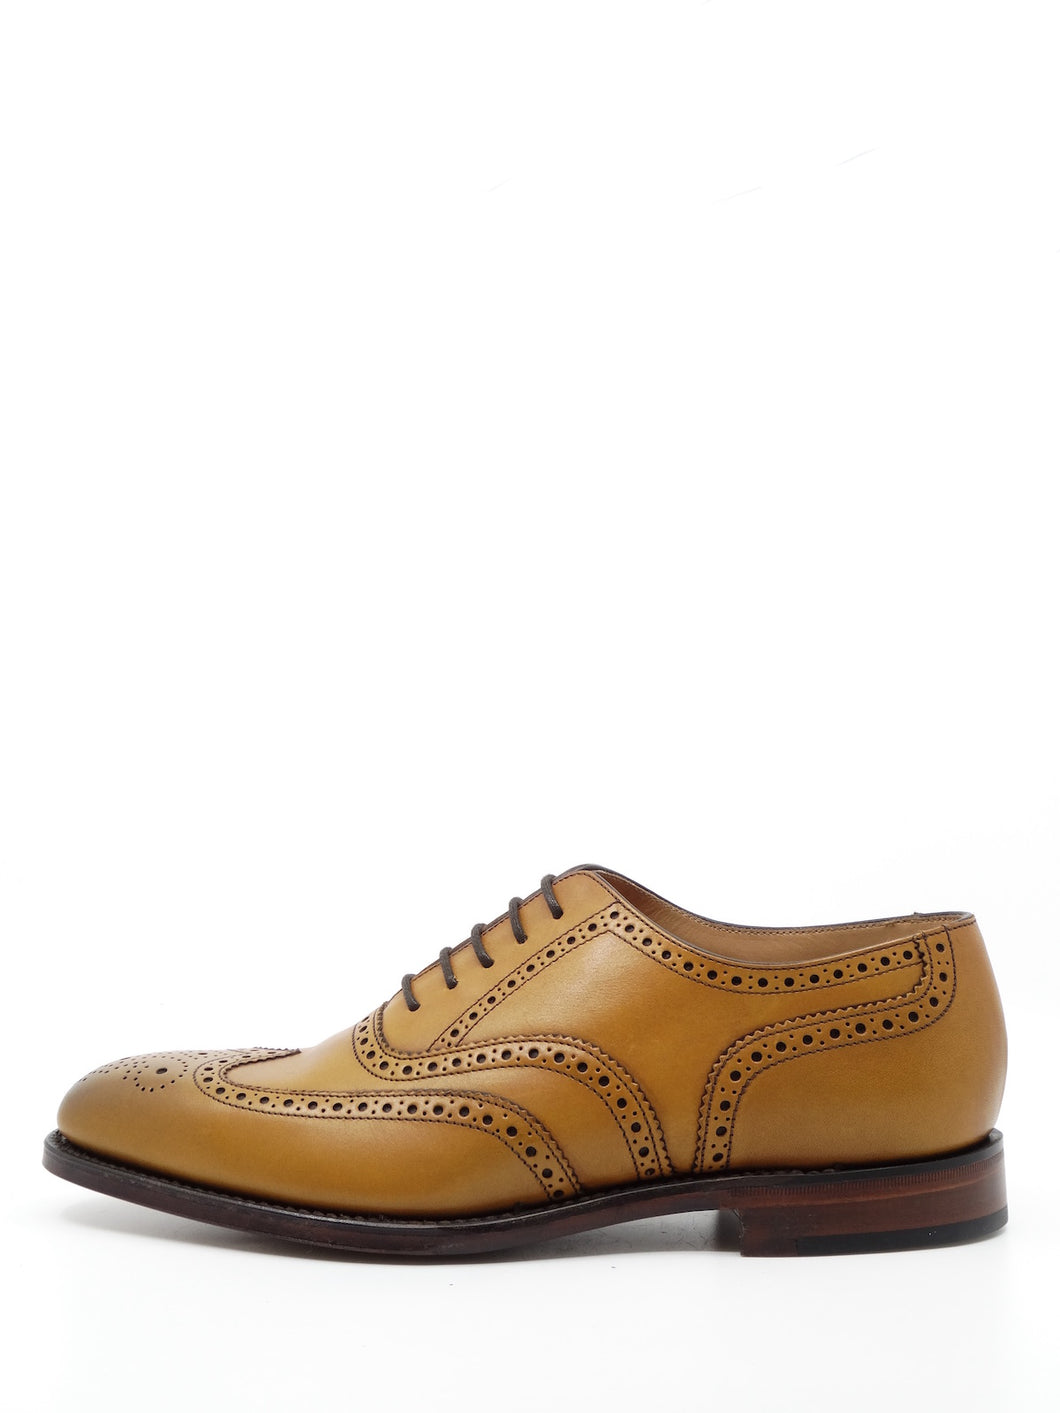 Loakes Buckingham Tan Leather